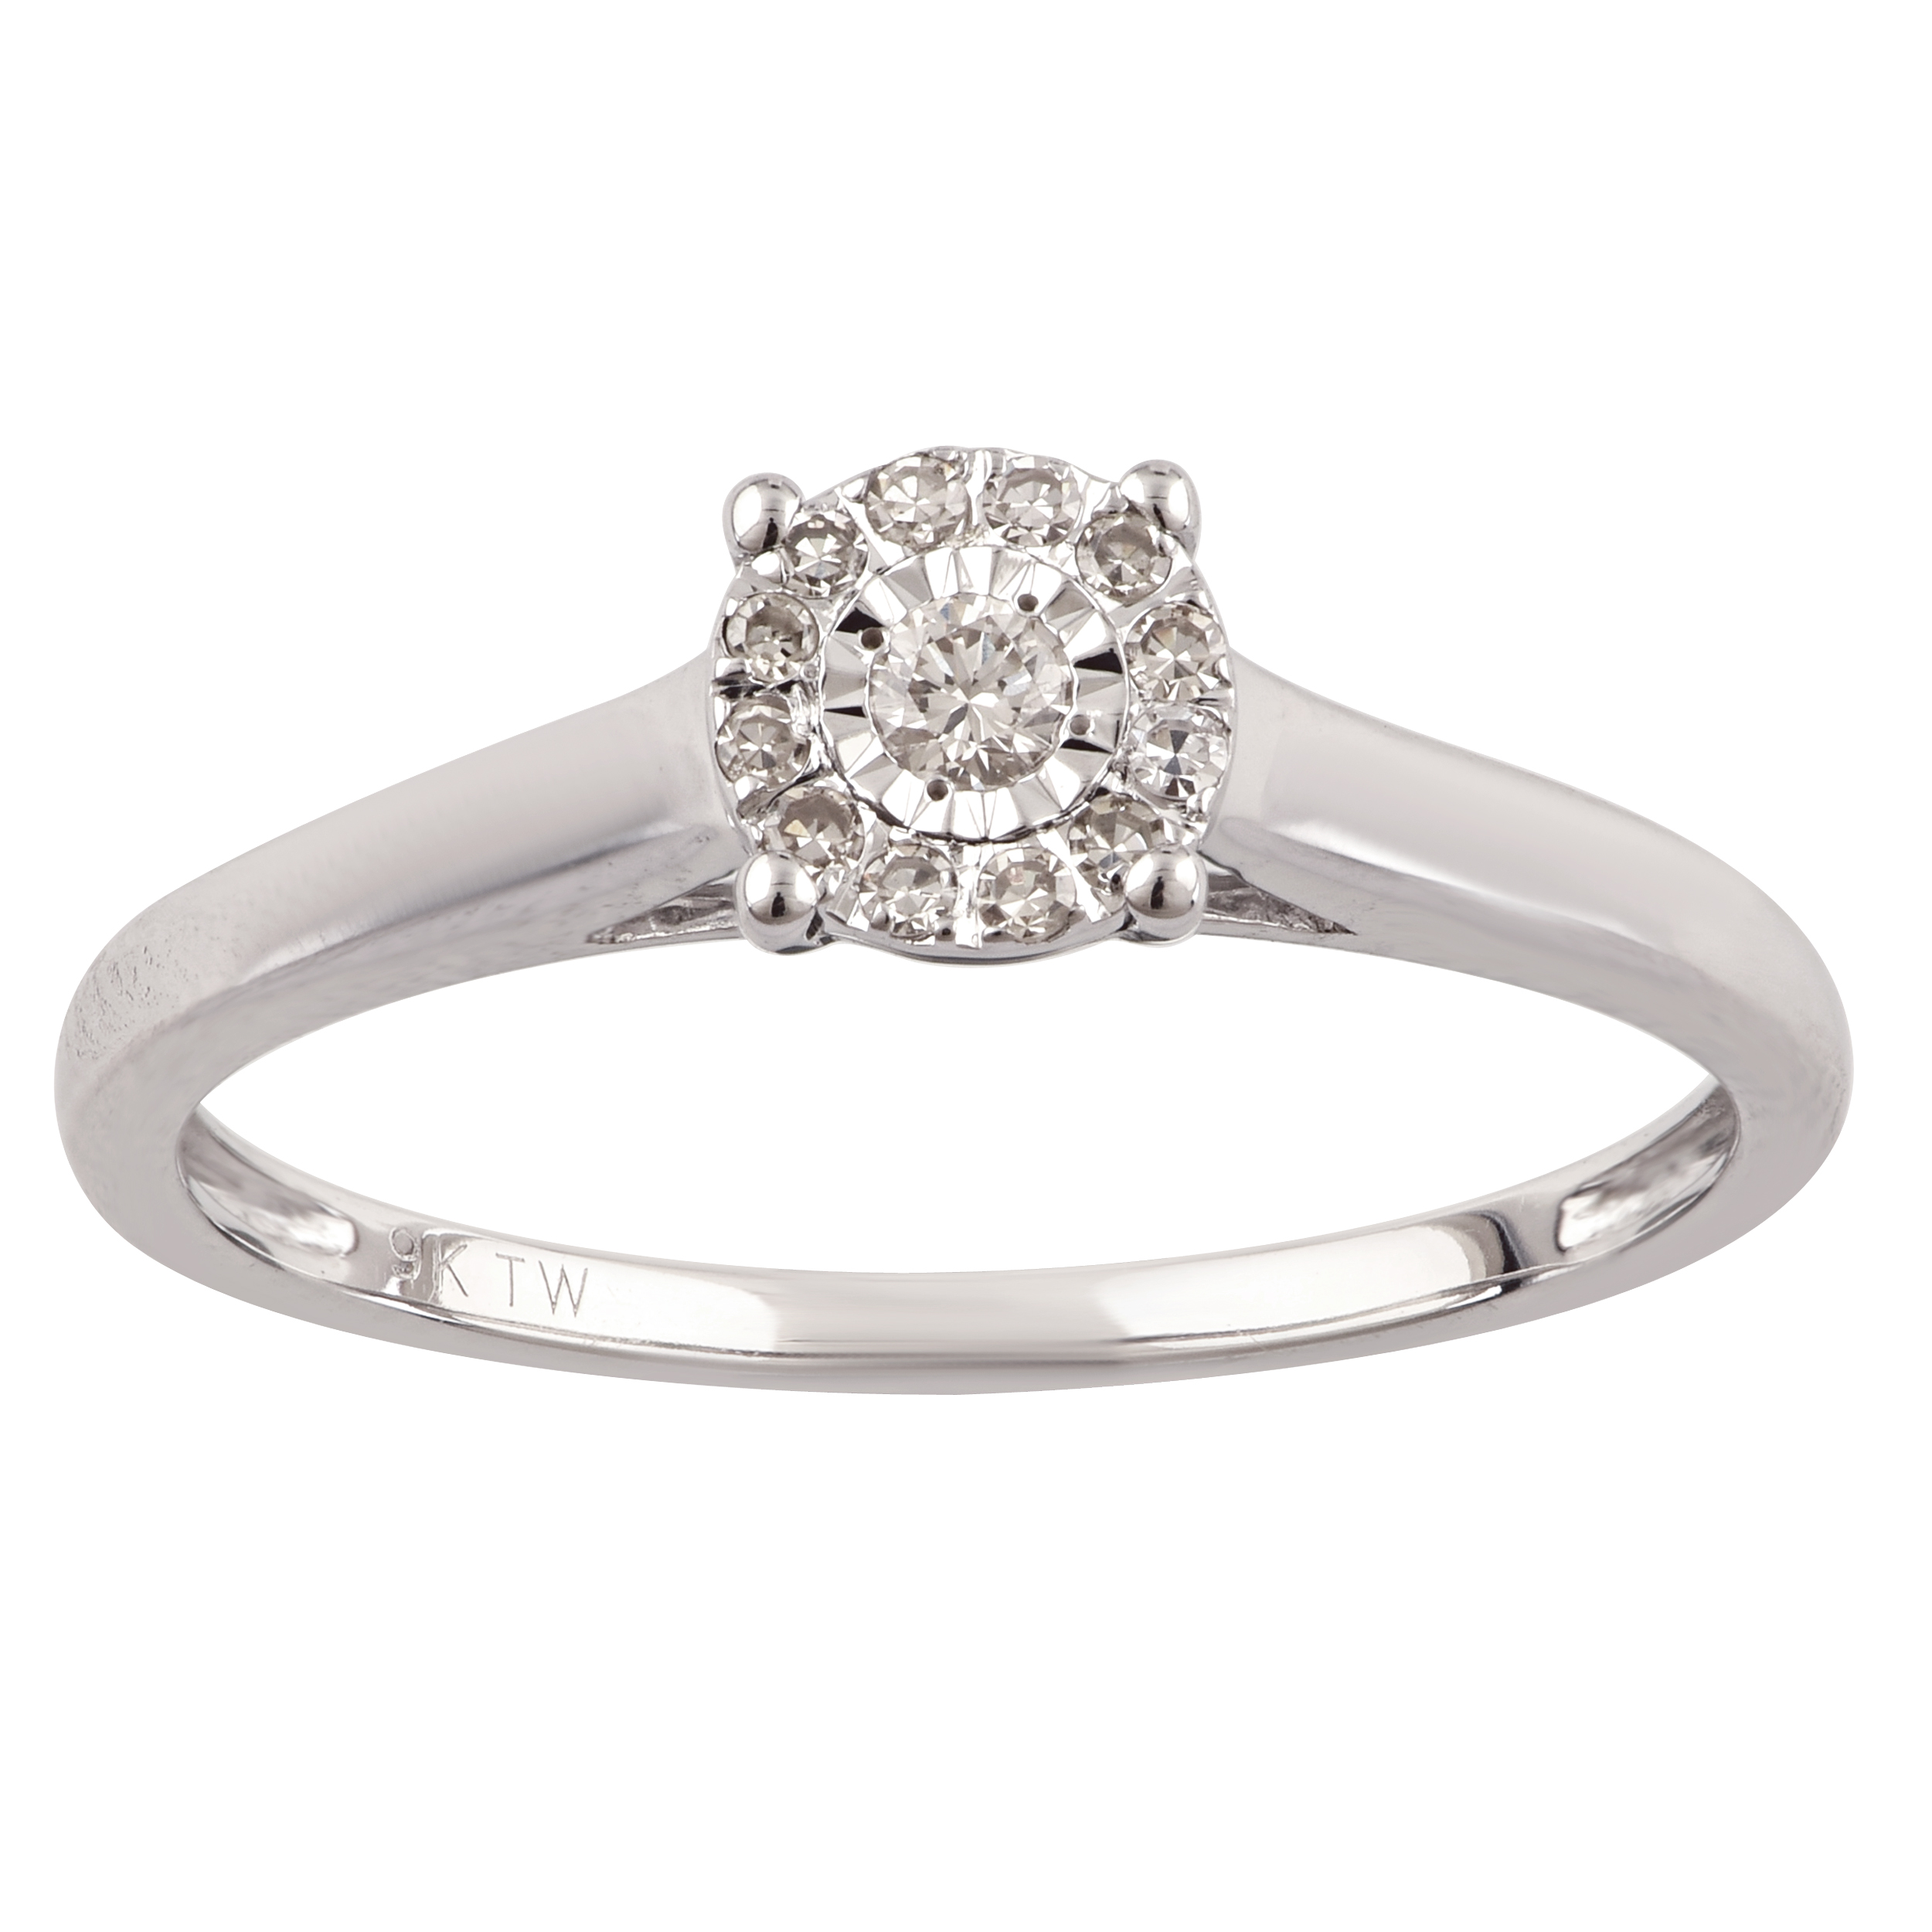 9ct White Gold 10 Points Diamond Ring with 13 Brilliant Cut Diamonds